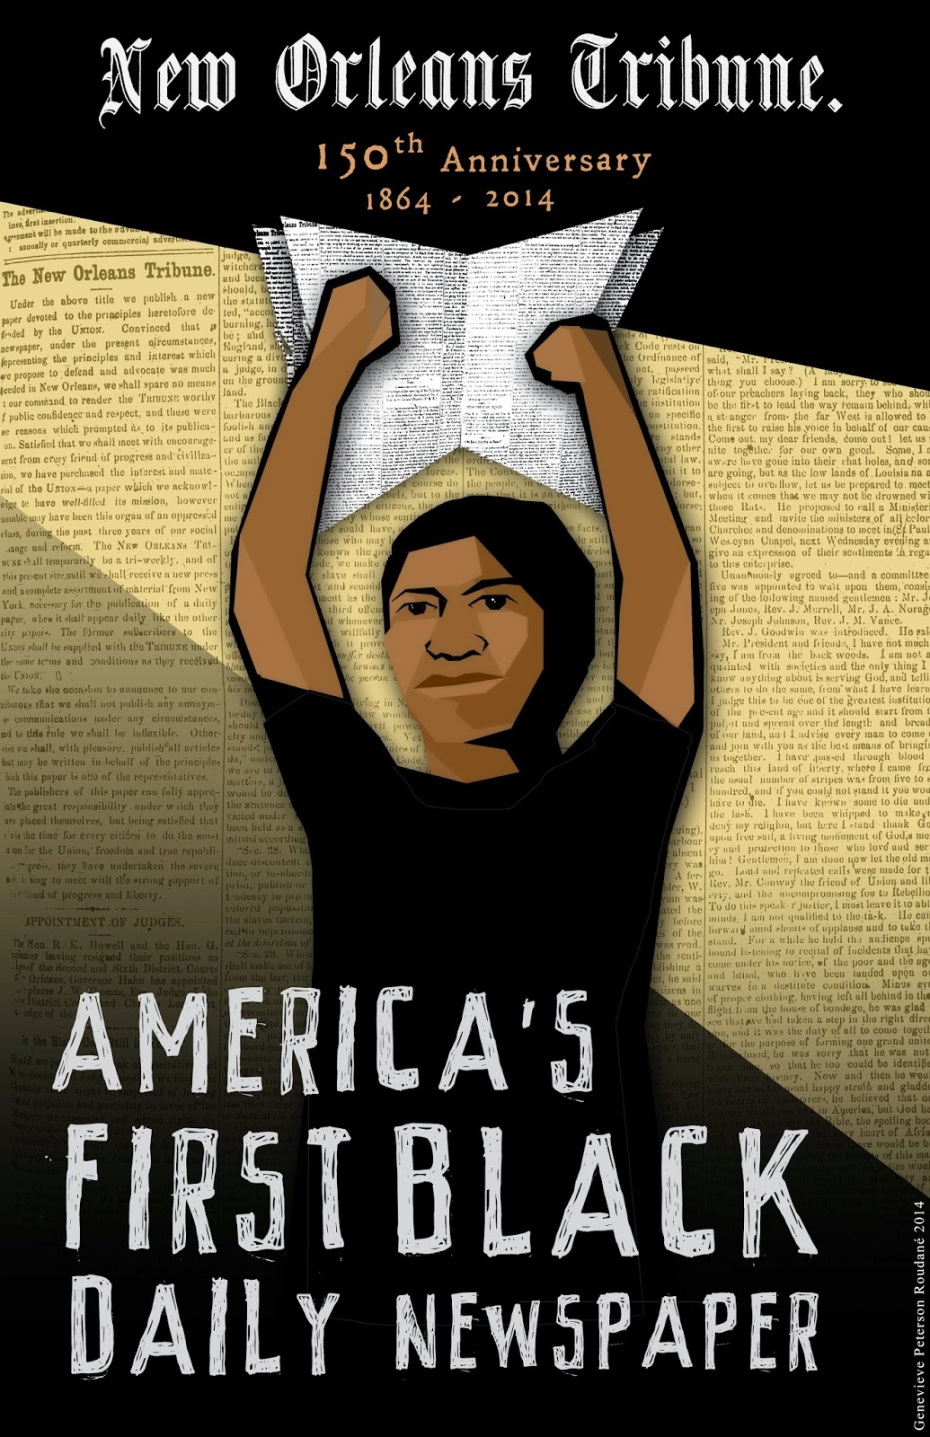 America's First Black Daily Newspaper poster by Genevieve Roudané